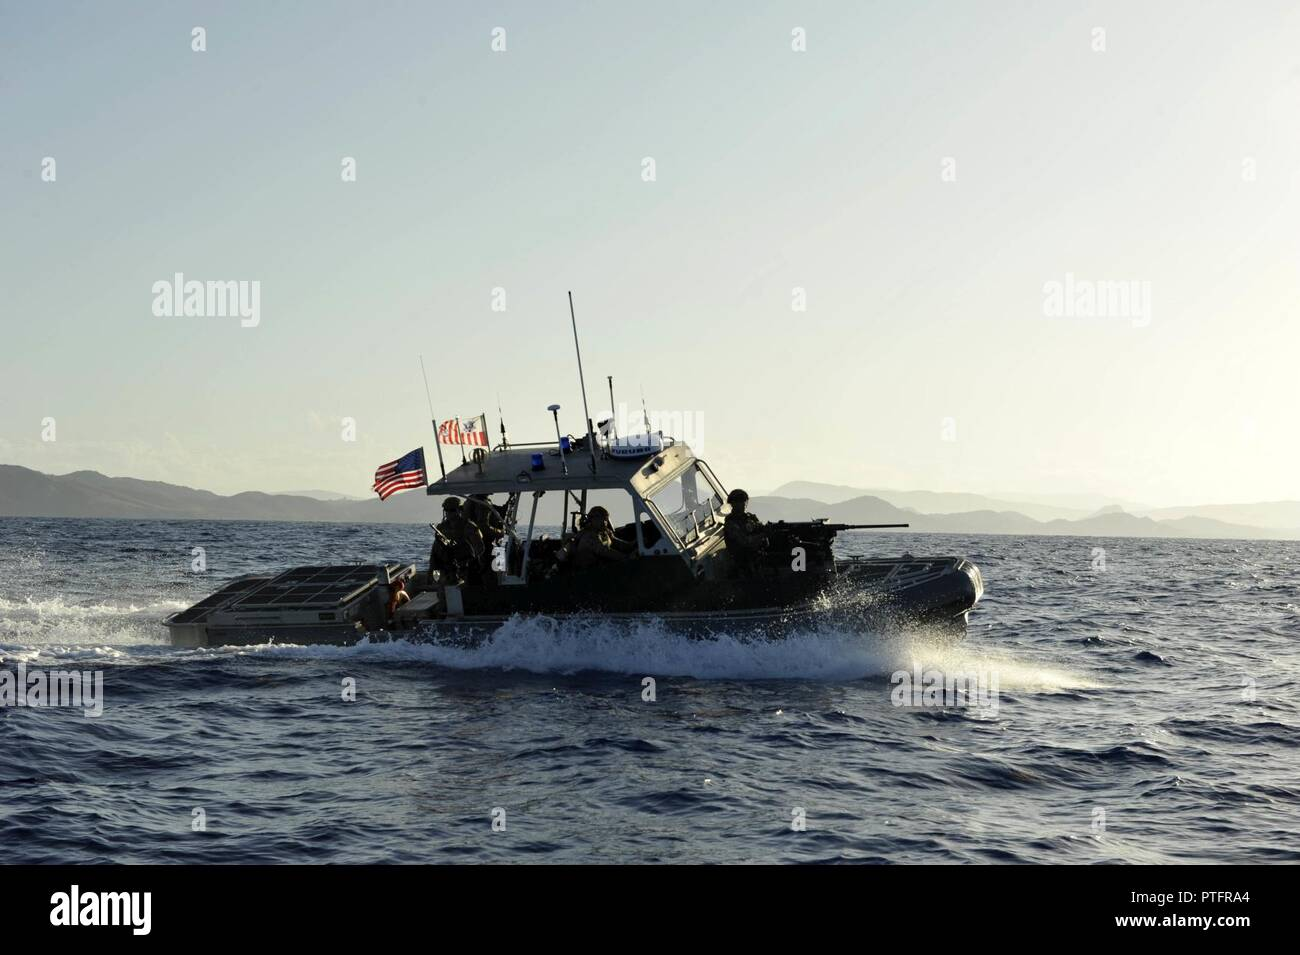 Coast Guardsmen from Port Security Unit 305 aboard a 32-foot Transportable Port Security Boat patrol the waters off the coast of Guantanamo Bay, Cuba, Wednesday, July 19, 2017. PSUs are reserve-staffed units who train in preparation for deployments capable of conducting joint operations worldwide in support of the Department of Defense. U.S. Coast Guard Stock Photo